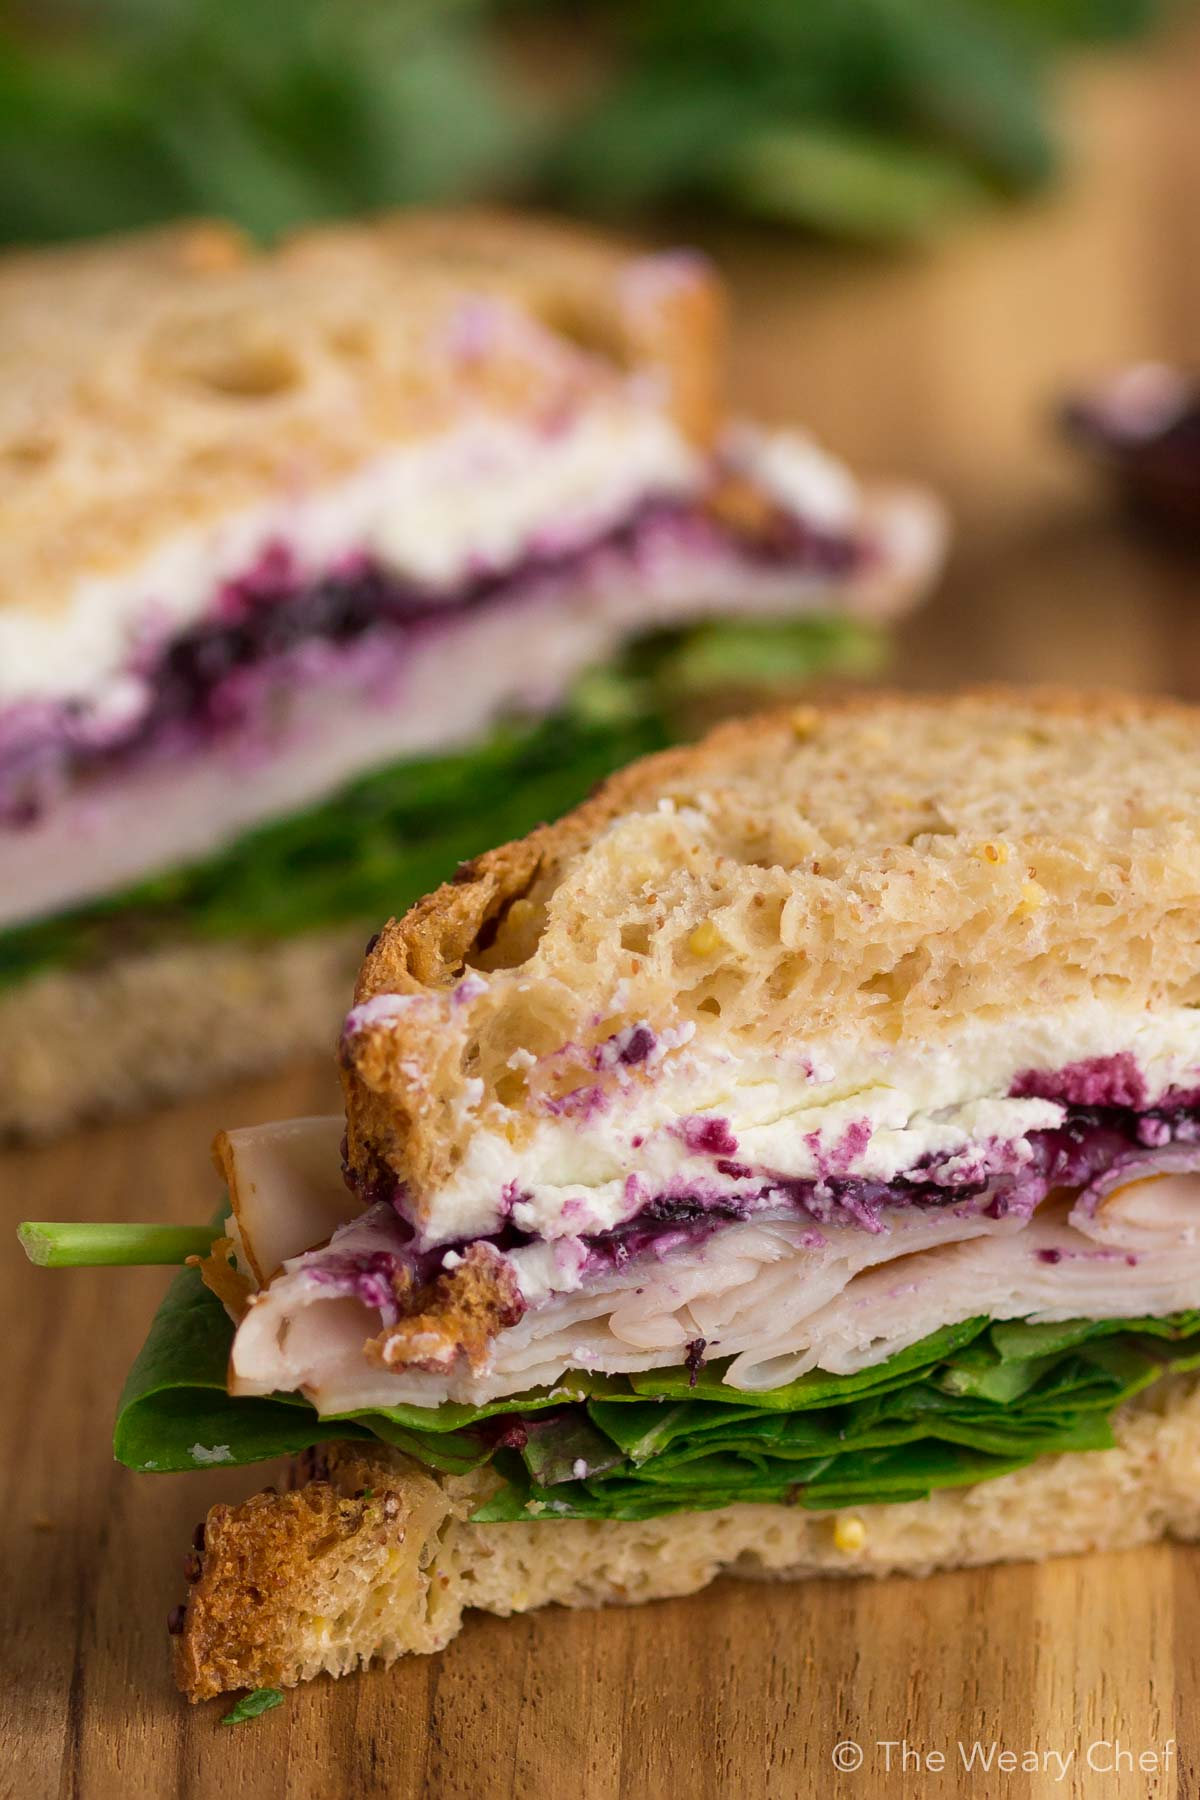 Don't be nervous. One bite of this Turkey Sandwich with Goat Cheese and Berry Preserves and you'll be hooked!